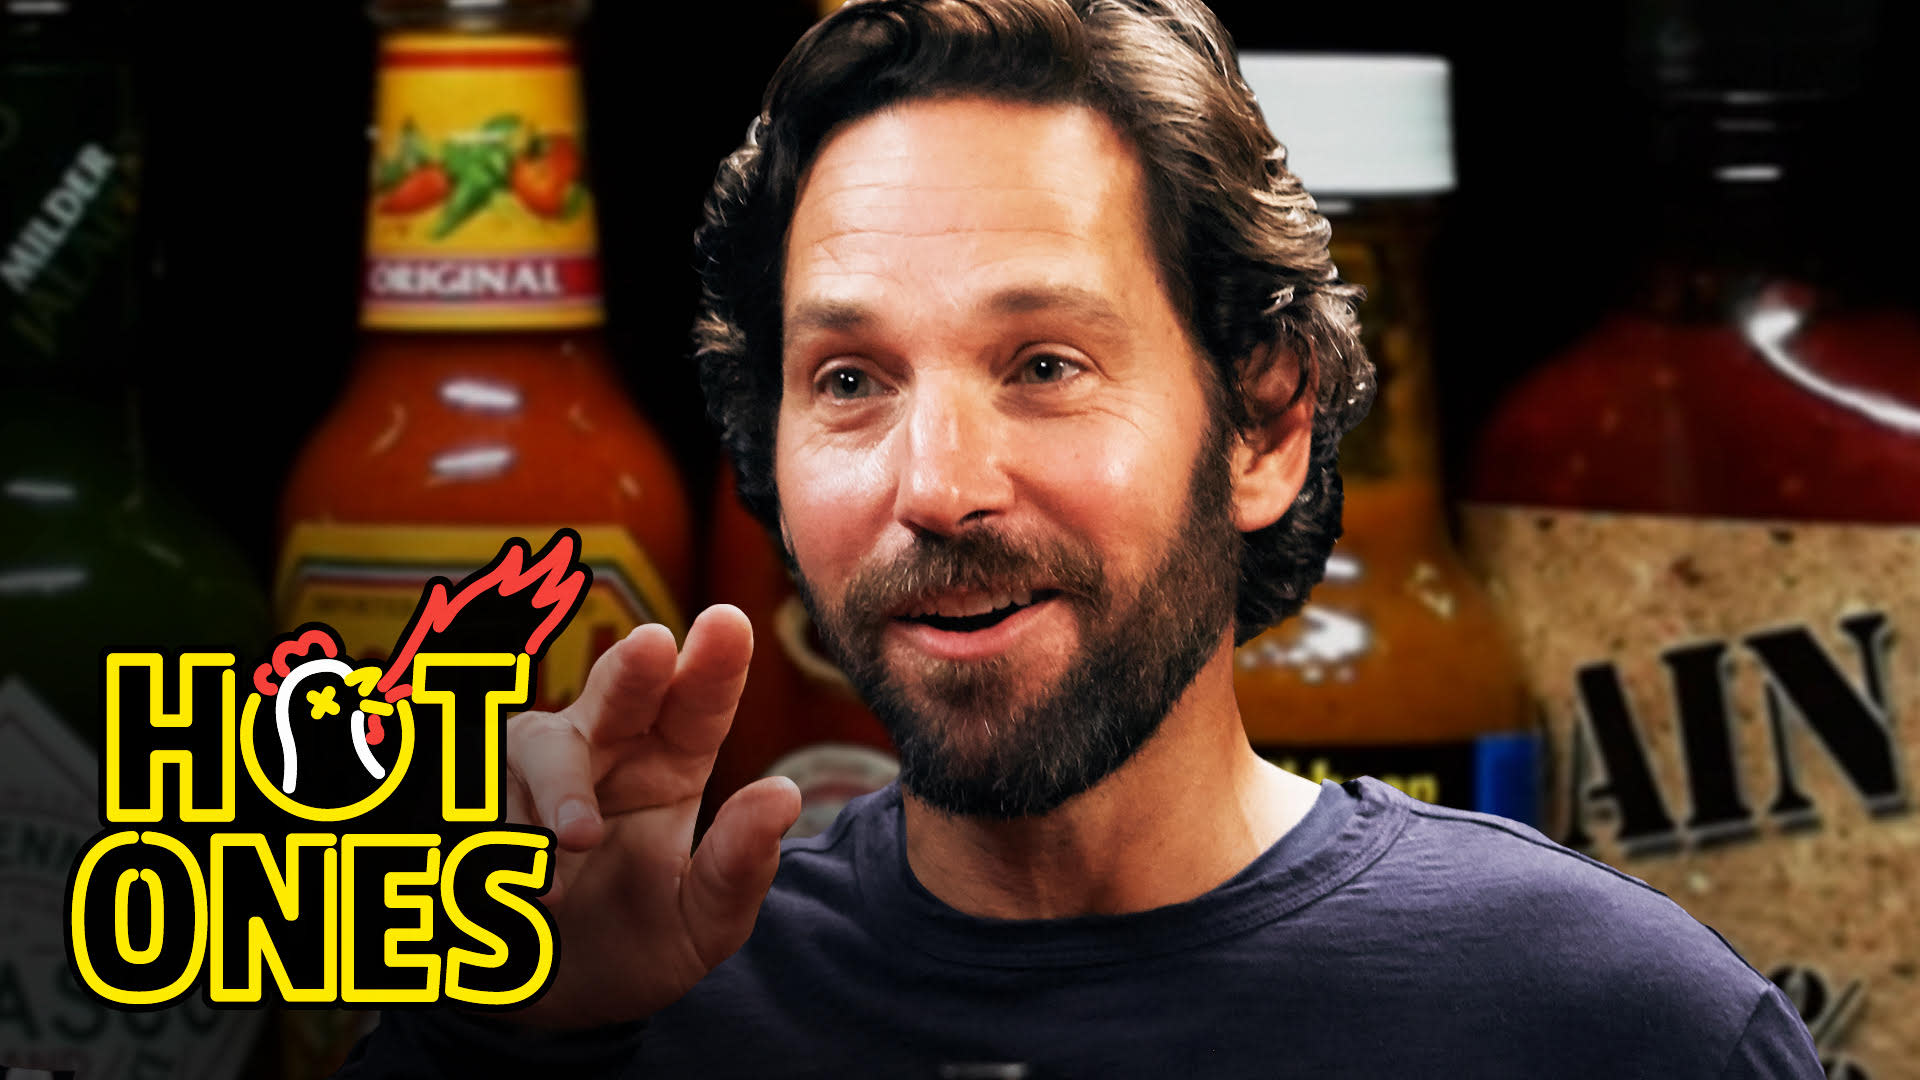 Paul Rudd's 'Hot Ones' Episode Inspires Highly Relatable 'Look at Us' Meme